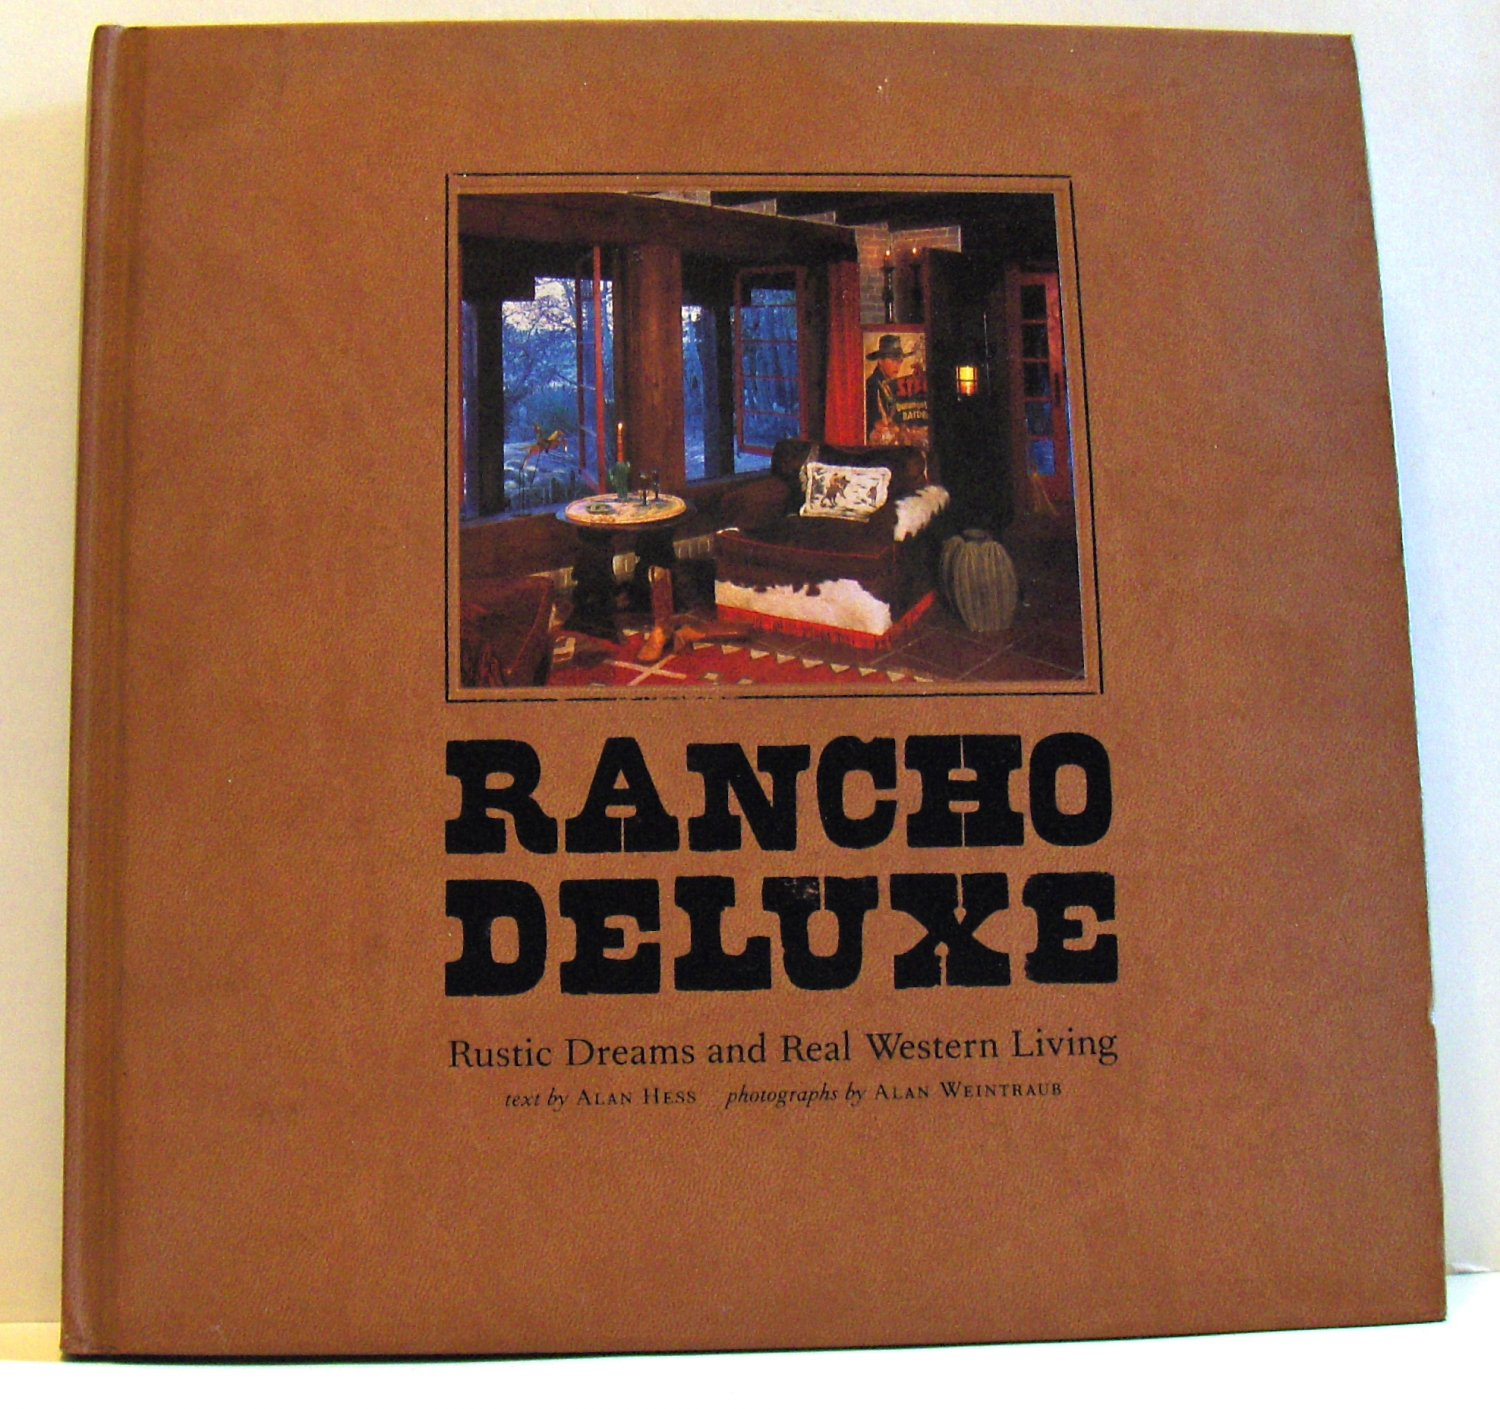 USED - Rancho Deluxe by Alan Hess, Alan Weintraub